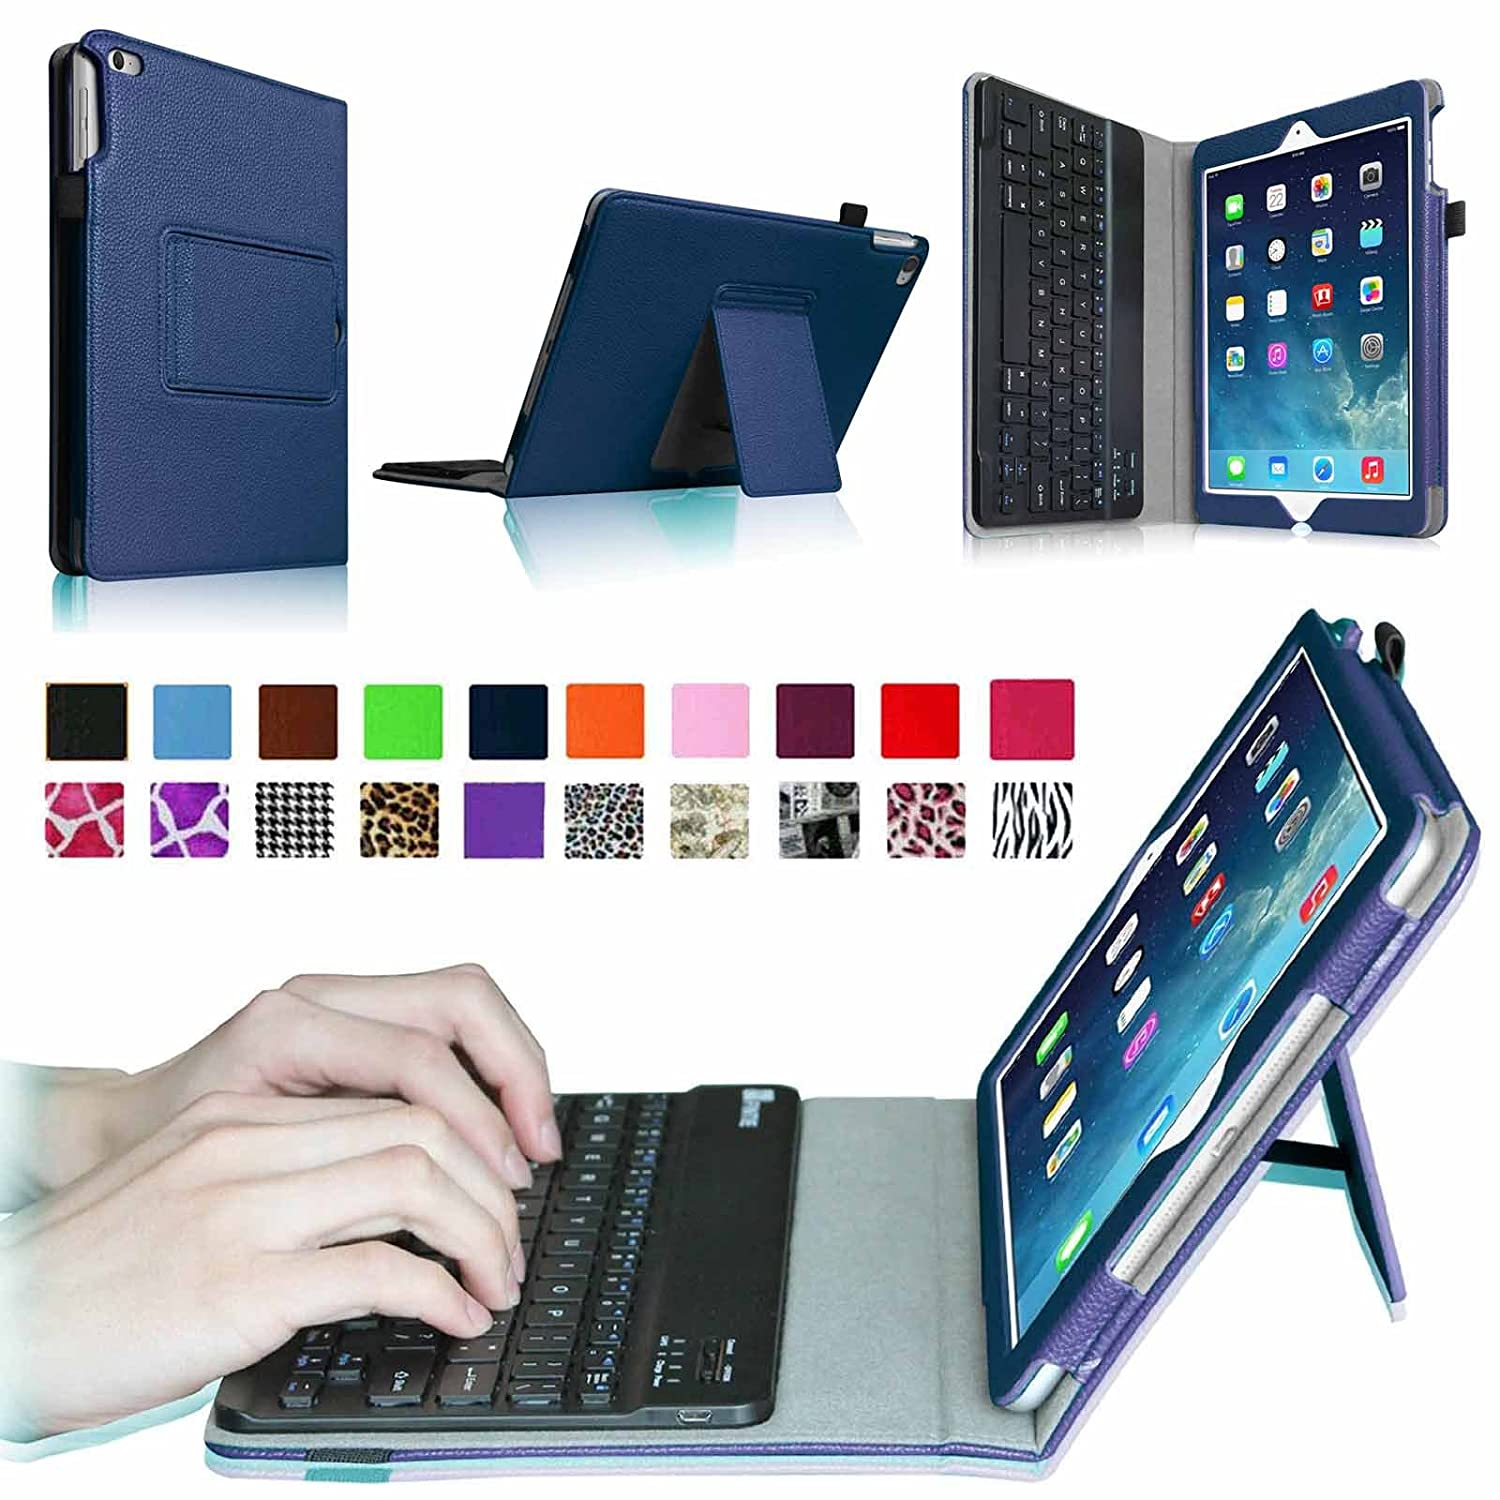 Top 20 Best Apple Ipad Air 2 Accessories Reviews 2016 2017 On Navy Pro Tools Iphone 6g 6p Fintie Keyboard Case Premium Pu Leather Folio Stand Cover With Removable Wireless Bluetooth For